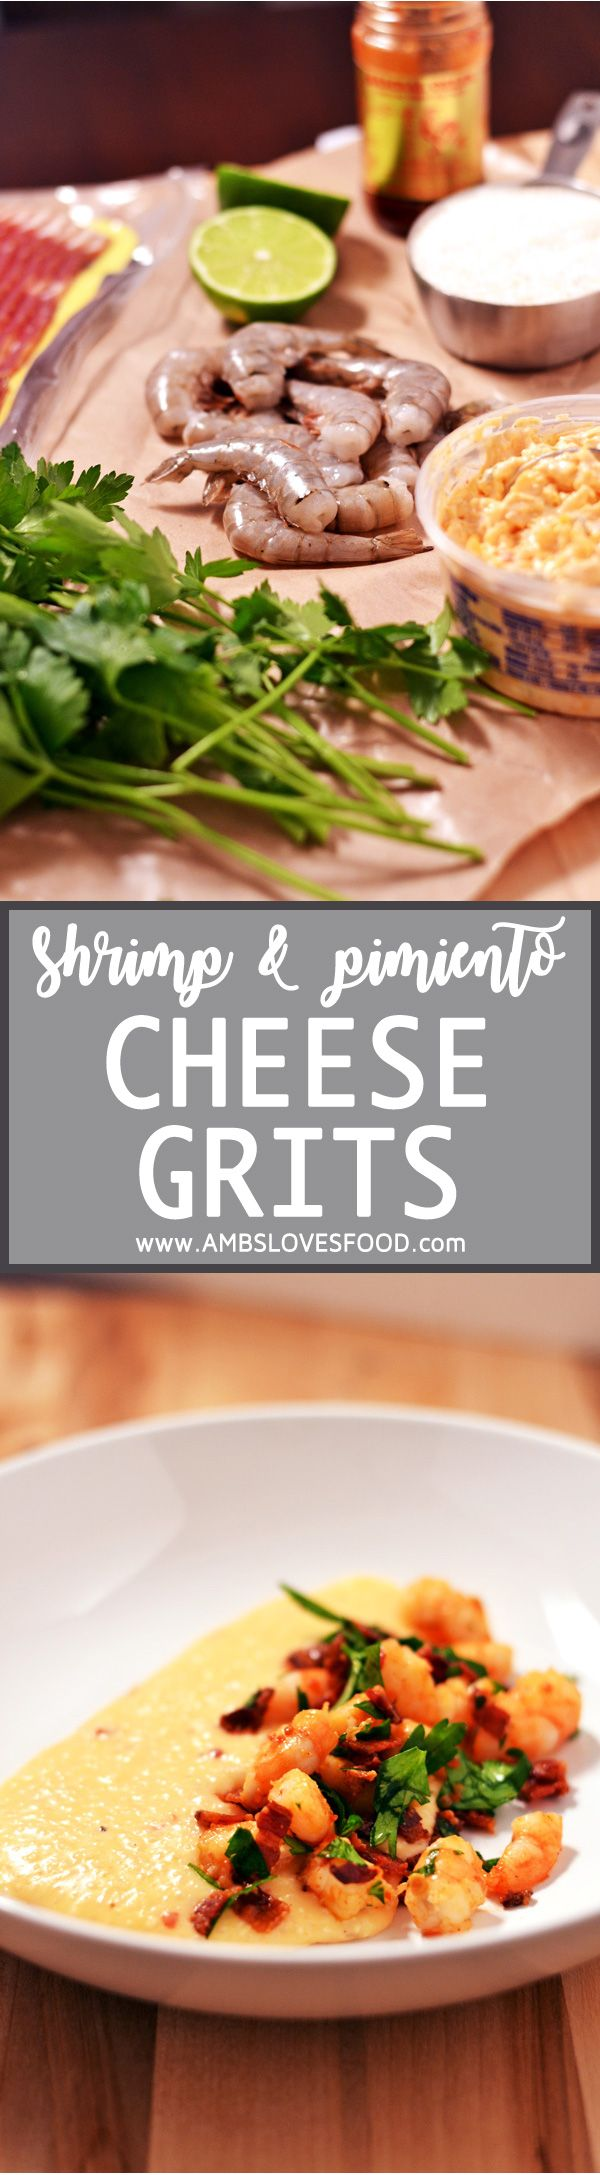 Shrimp & Pimiento Cheese Grits are the answer to everything, this easy super flavorful recipe is one of my absolute favorites.